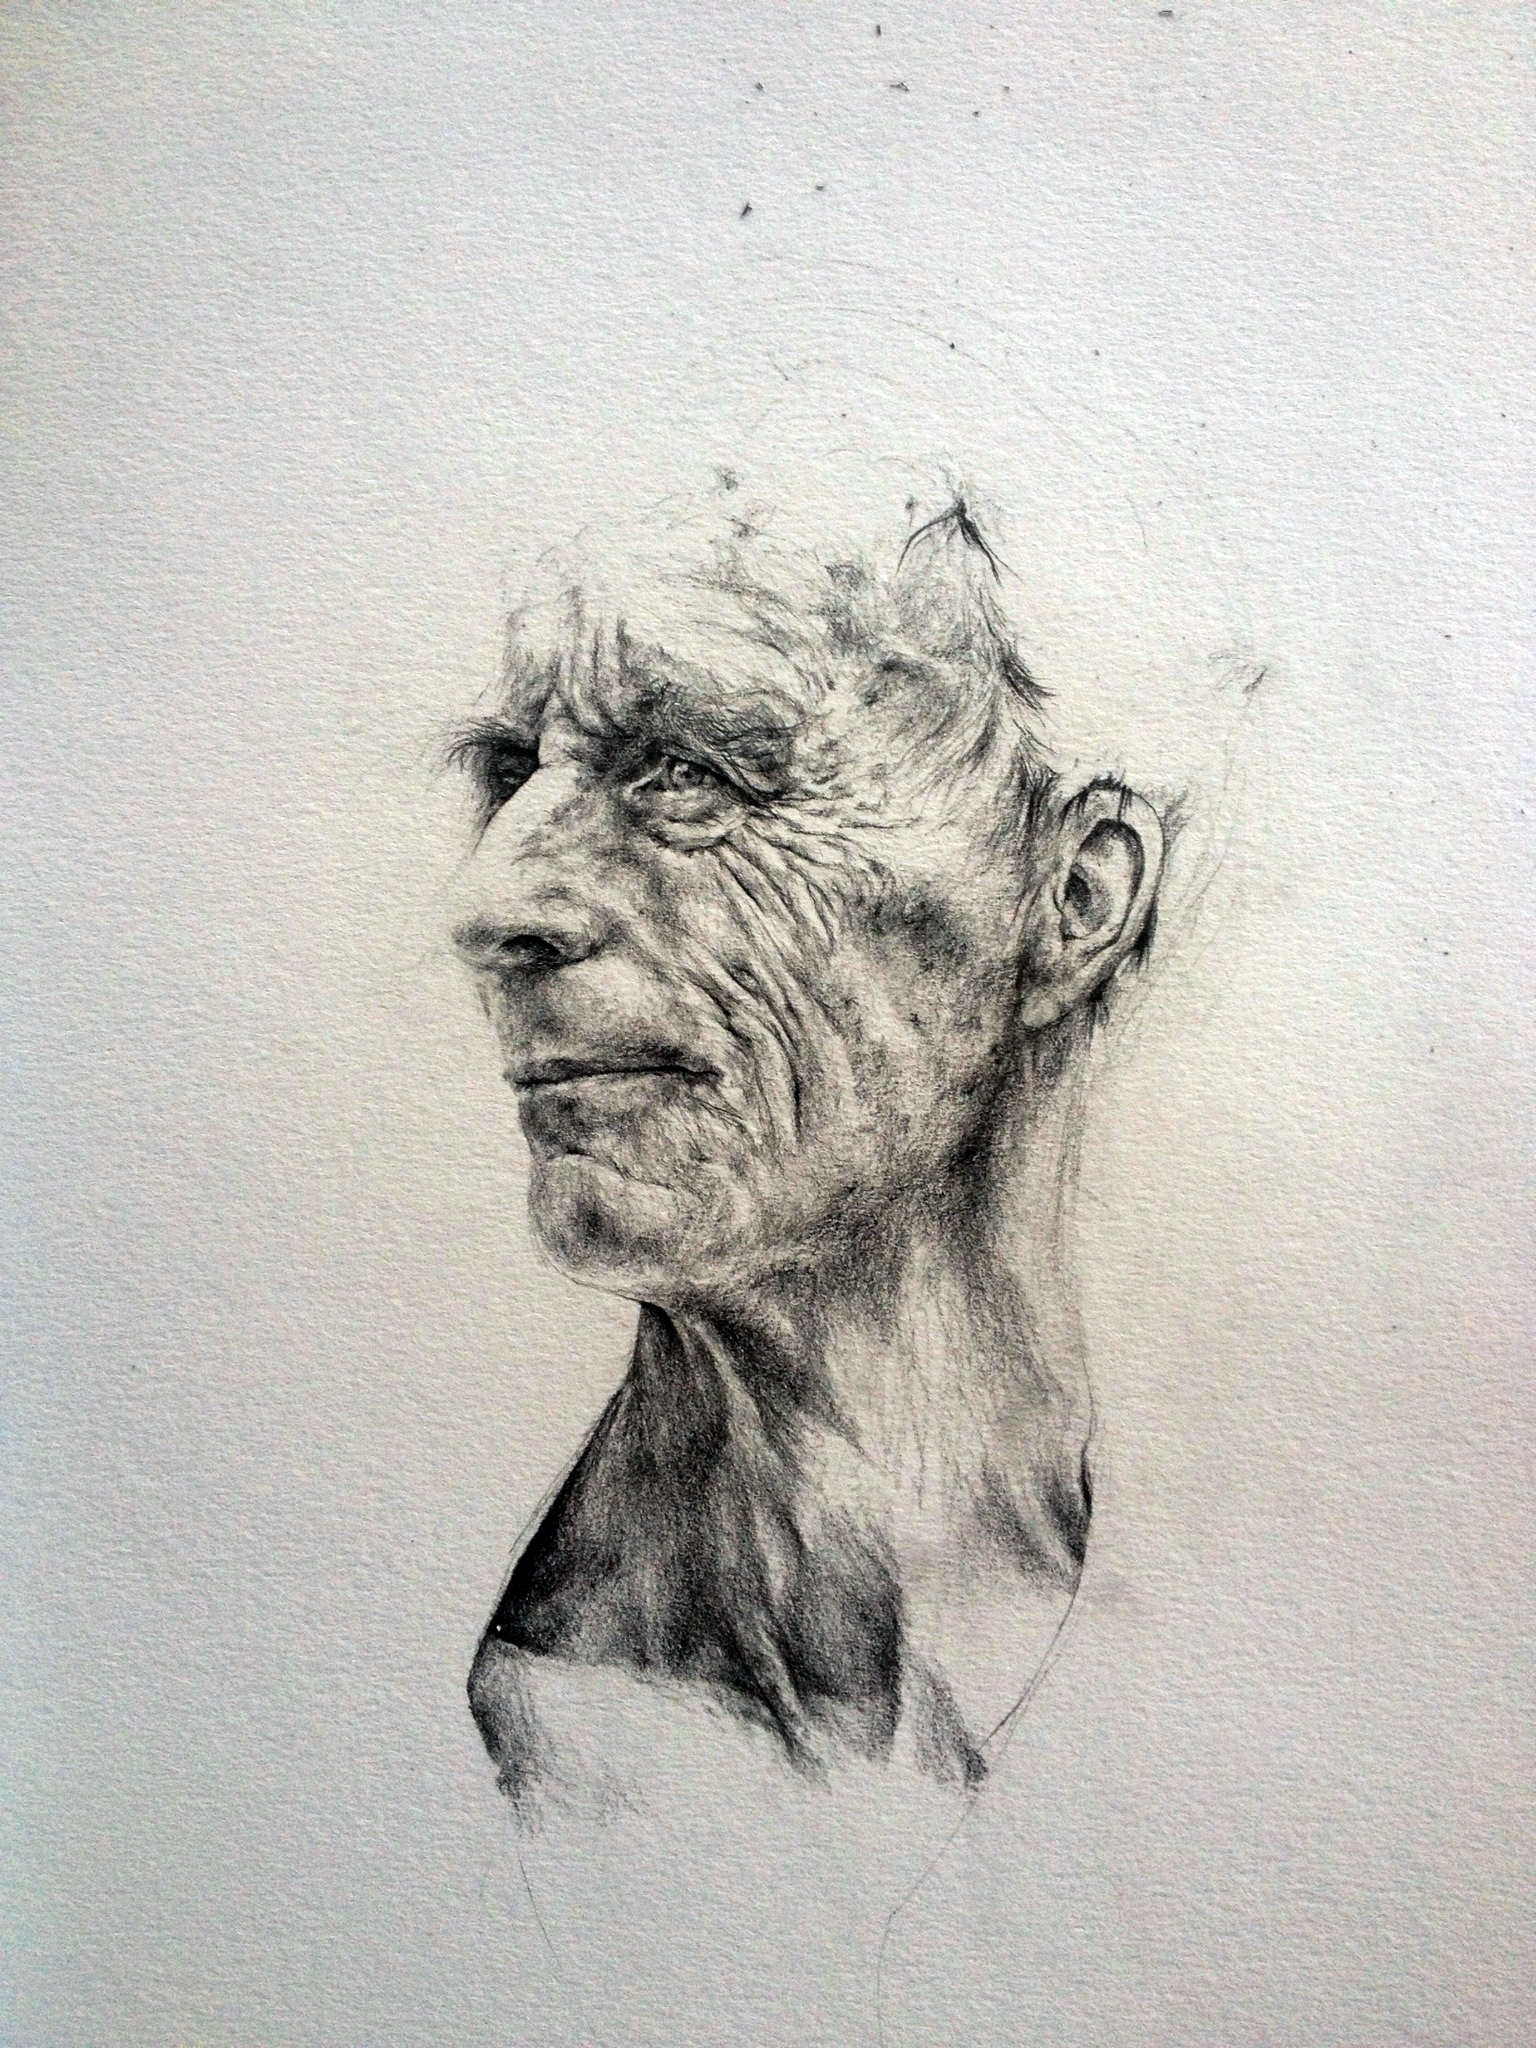 Dad's Head, Looking Back  Pencil on paper  30cm x 40cm  2014